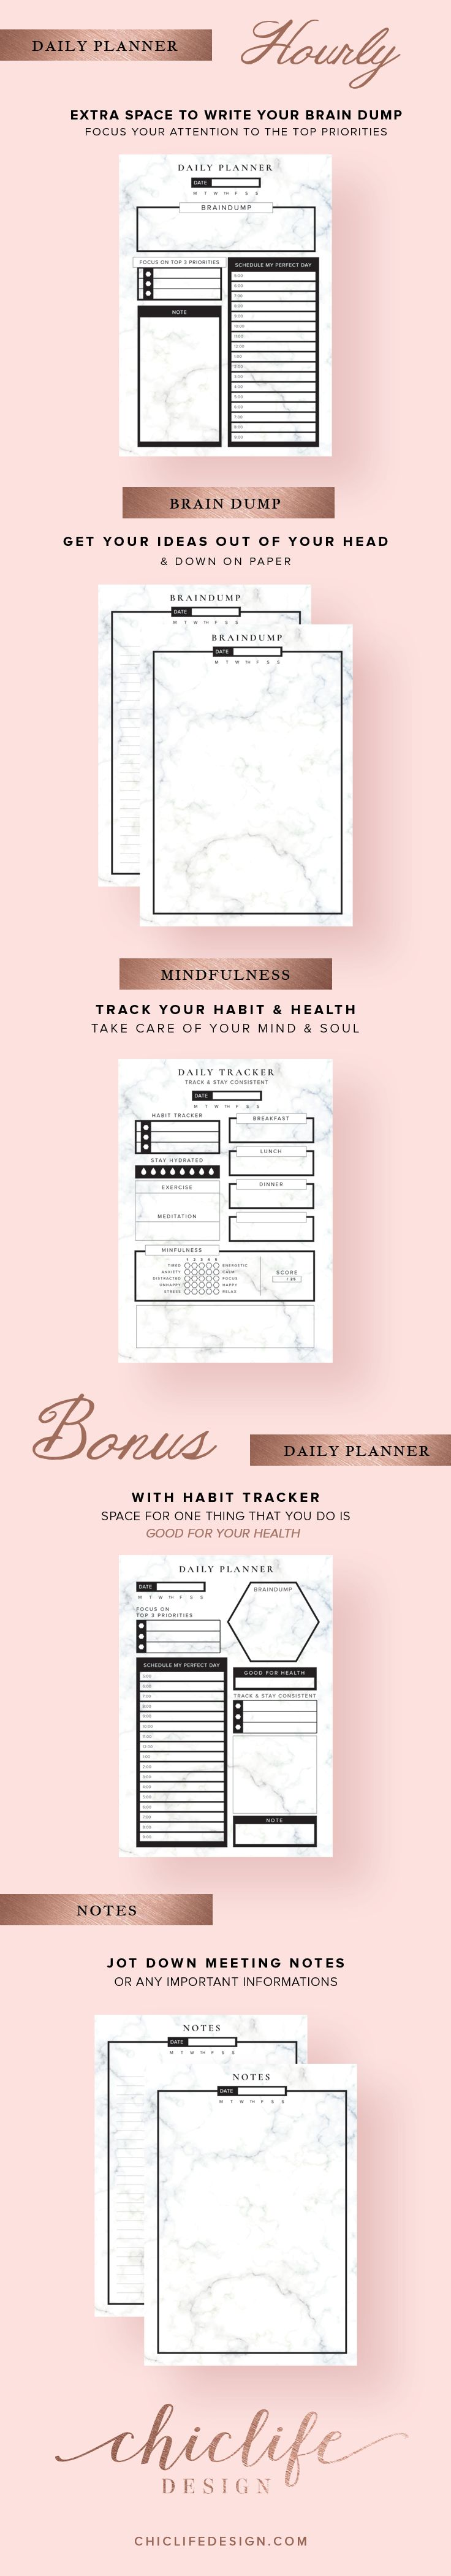 Pretty 12 Week Calendar Template Big 15 Year Old Resumes Shaped 1and1 Templates 2 Inch Heart Template Old 2 Page Resume Header Sample Green2013 Calendar Templates 25  Best Ideas About Hourly Planner On Pinterest   Study ..